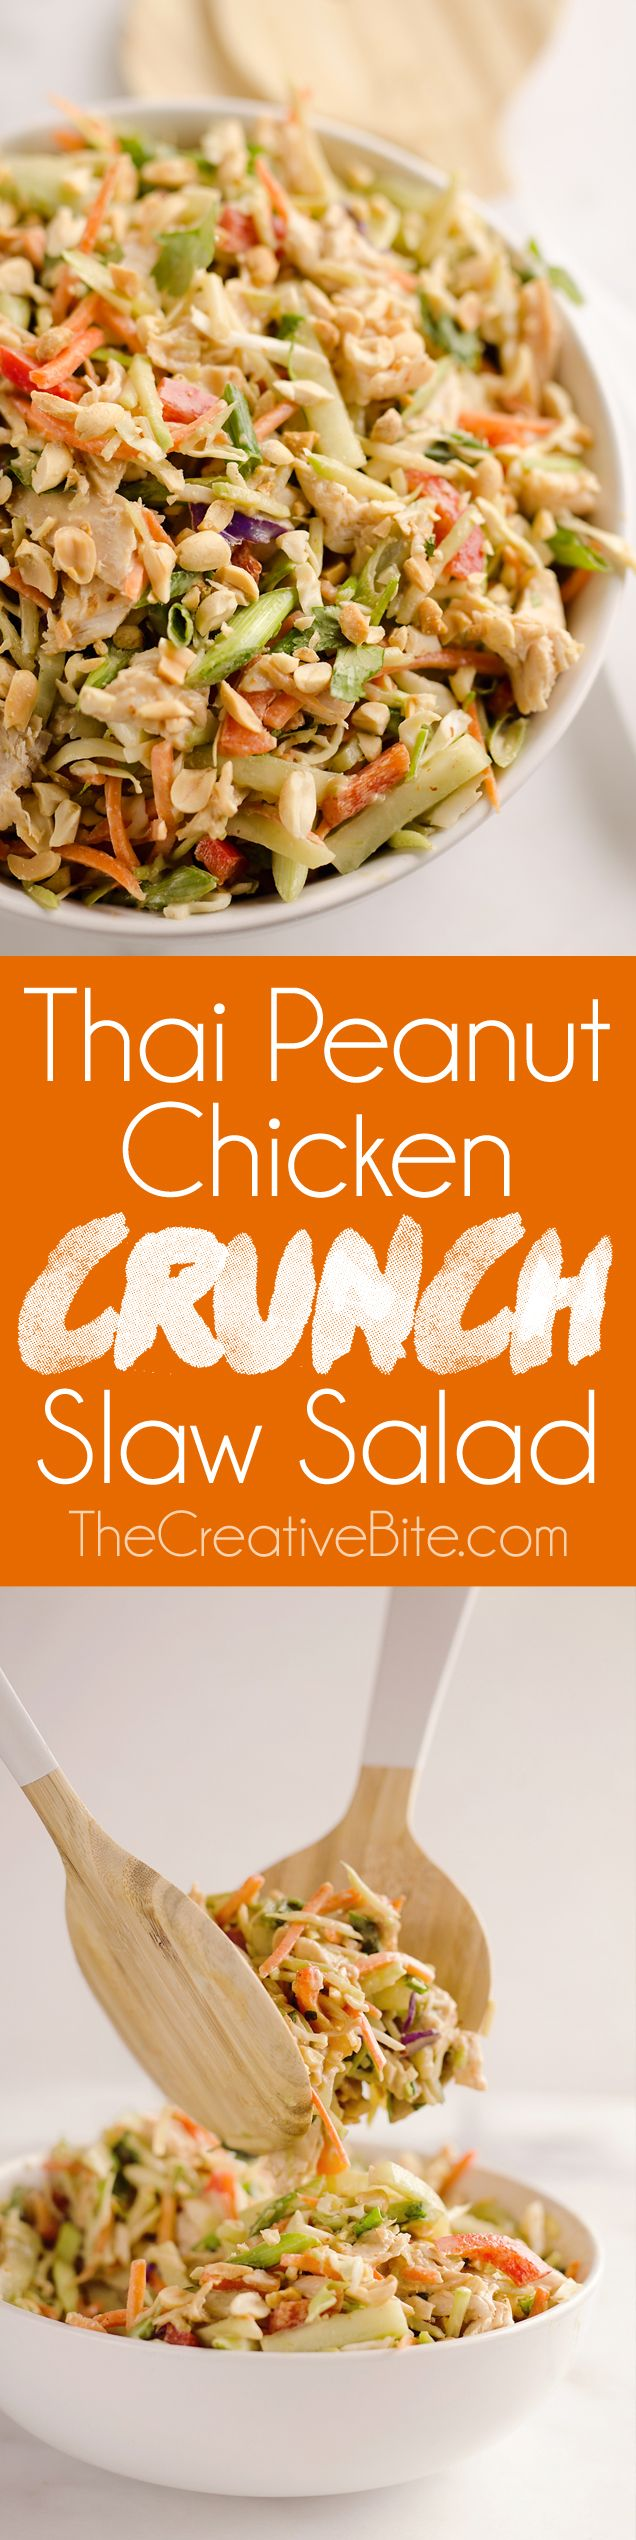 Thai Peanut Chicken Crunch Slaw Salad with Thai Peanut Sauce